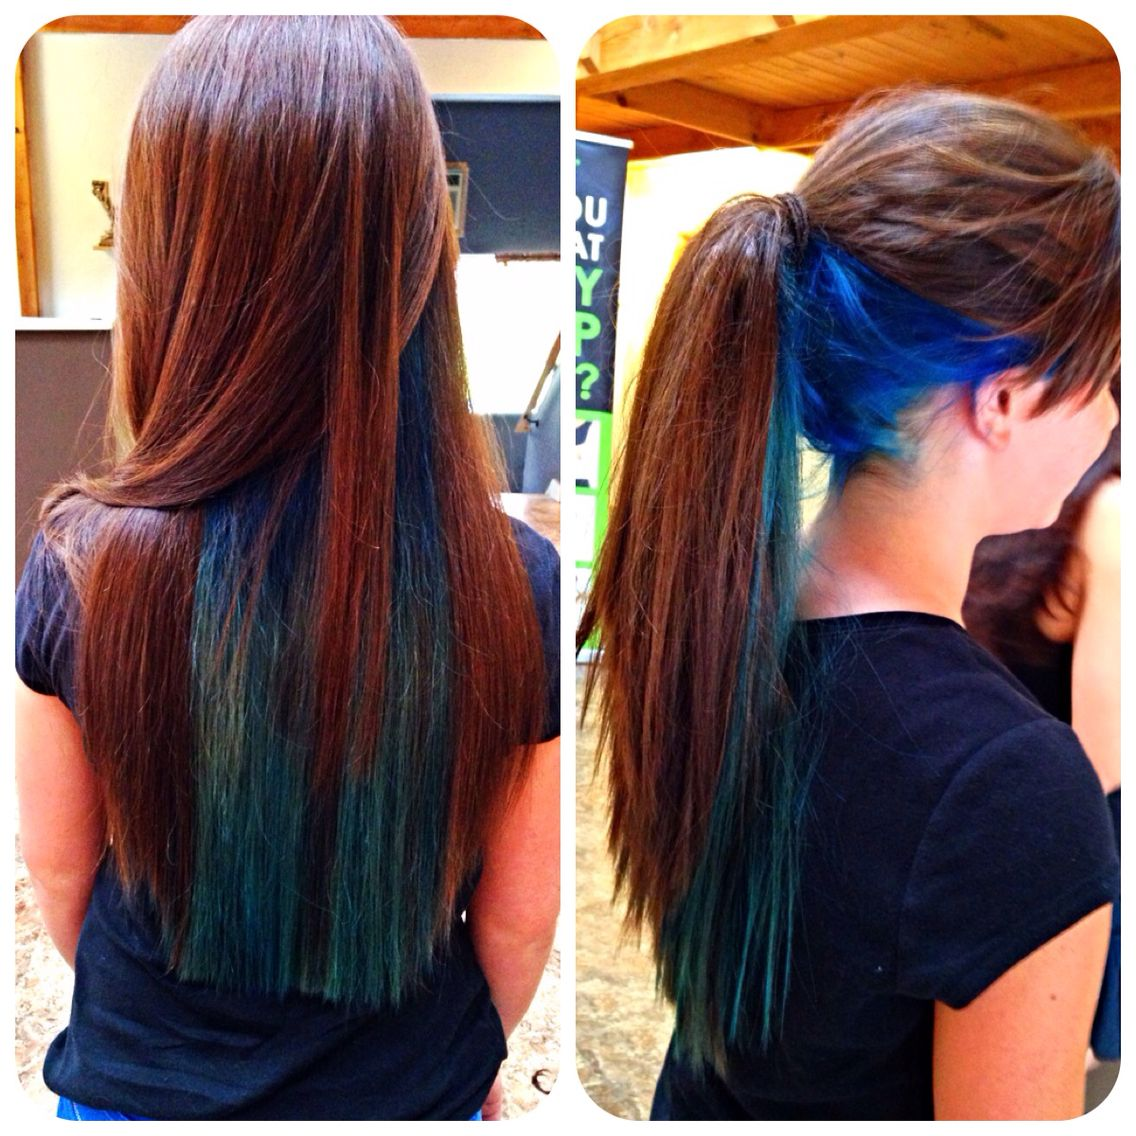 Blue And Teal Under Layer Bright Longhair Colors Except With Purples Blues Instead Hair Styles Peekaboo Hair Long Hair Styles